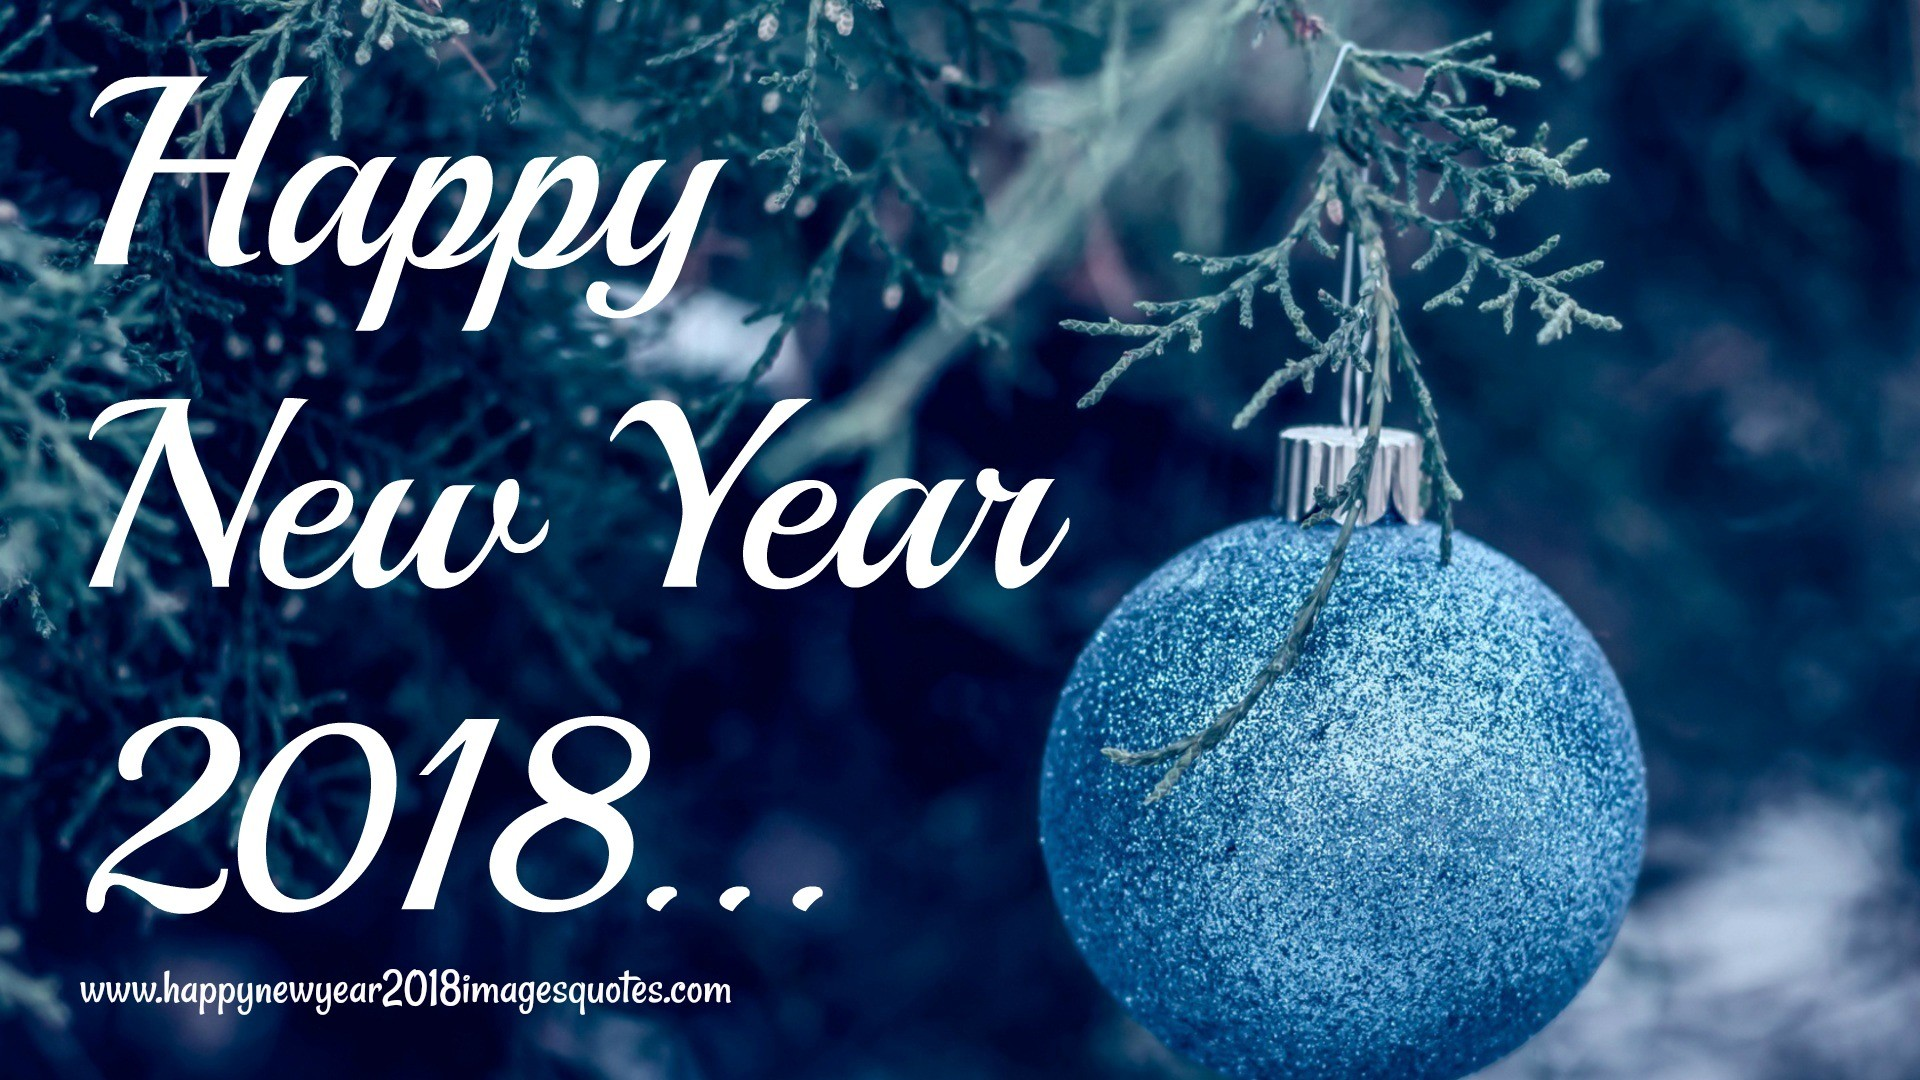 1920x1080 feiertage new year 2018 feiertage neujahr happy new year wallpaper